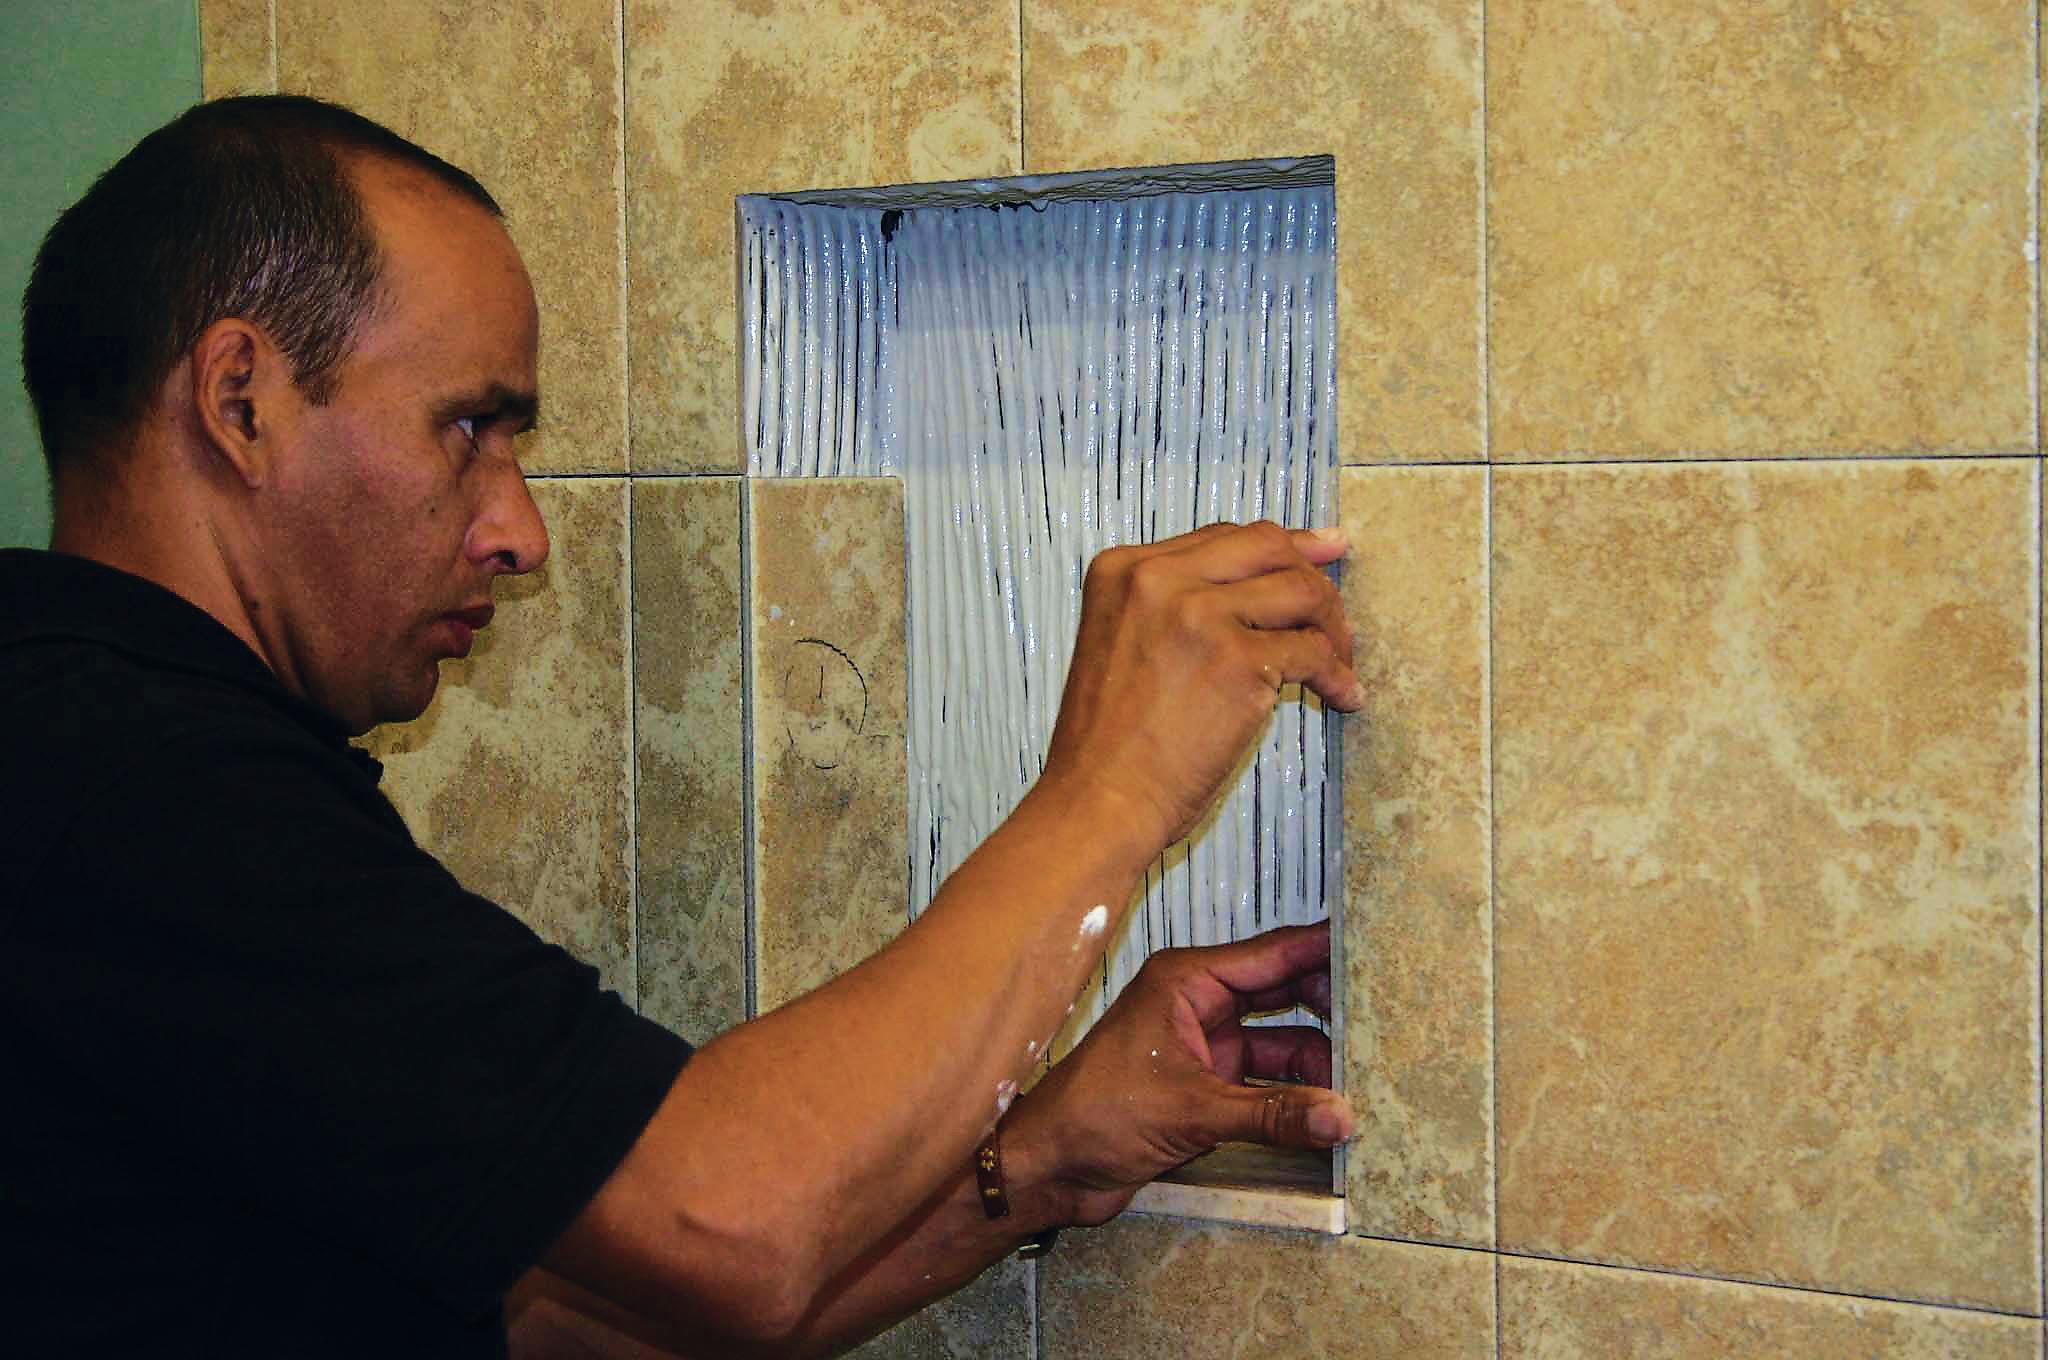 Tile Redi Redi Niche Pre Formed Niches | Remodeling | Shower, Bath, Mold,  Walls, Tile, Installation, Tile Redi